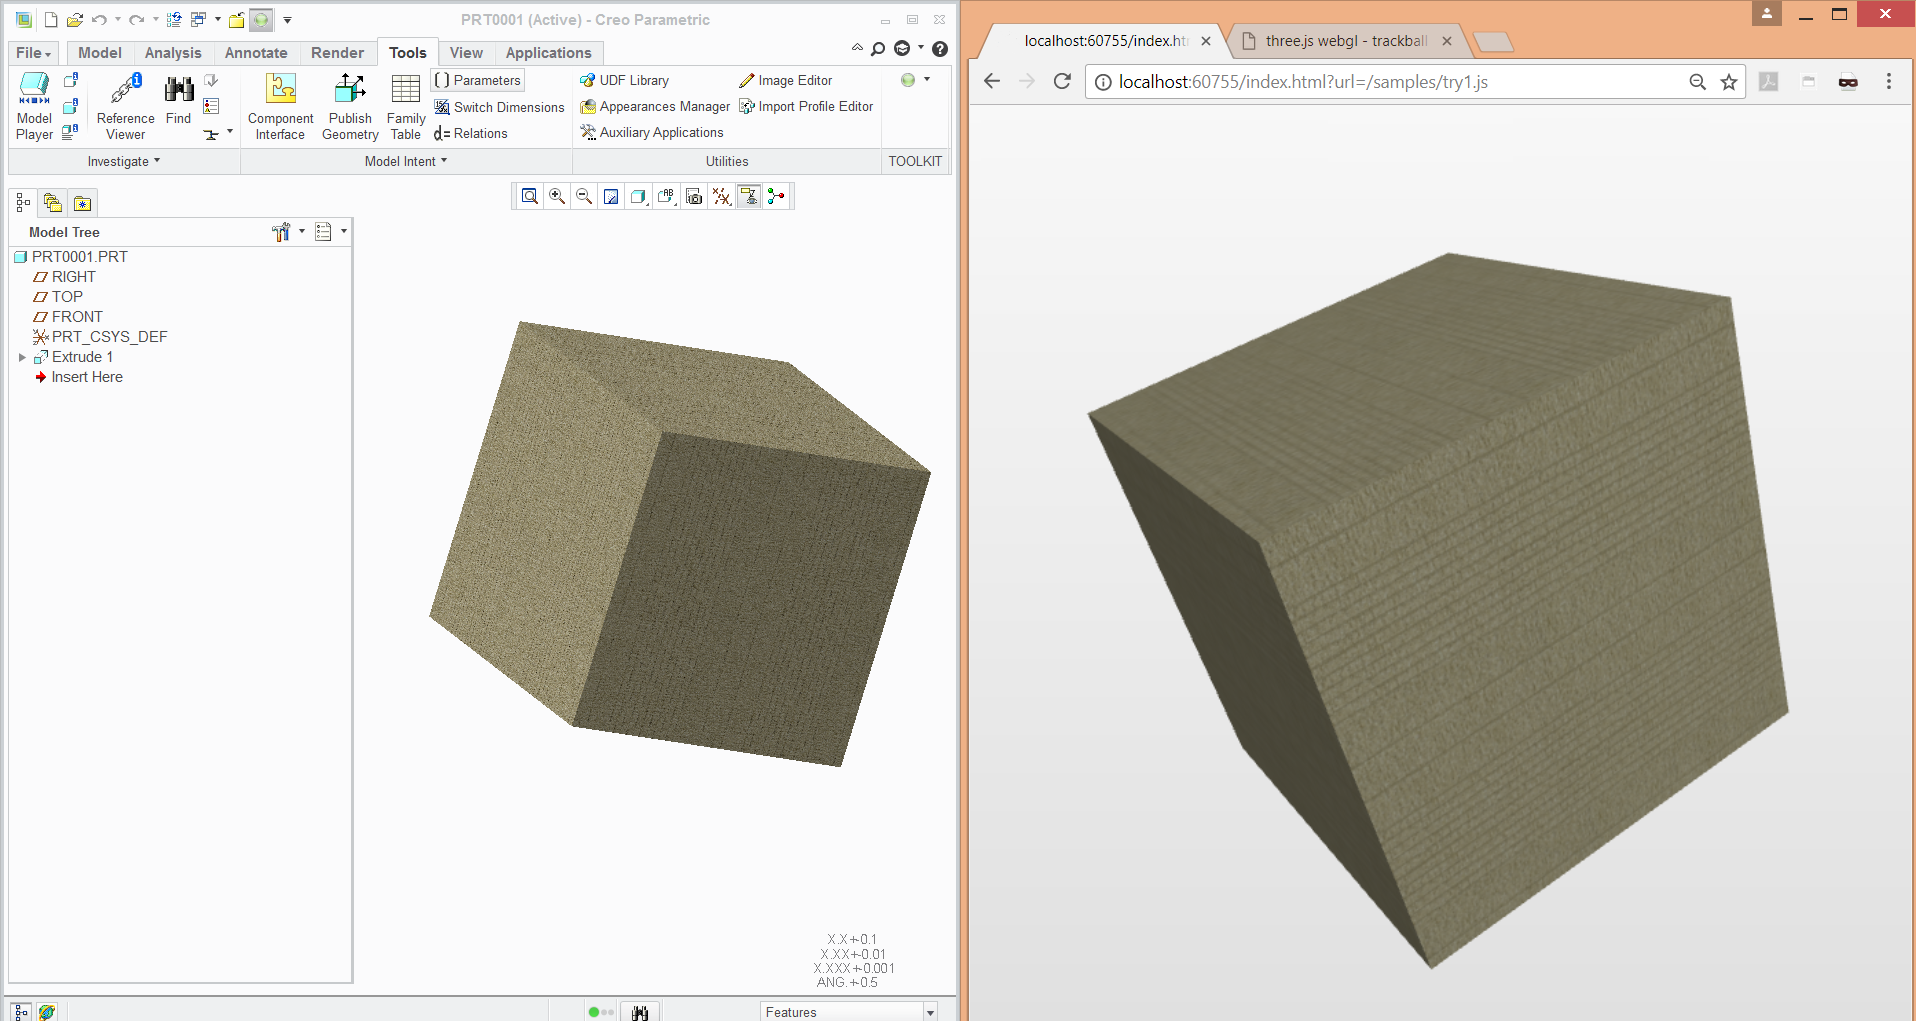 cube exported from PTC Creo to WebGL